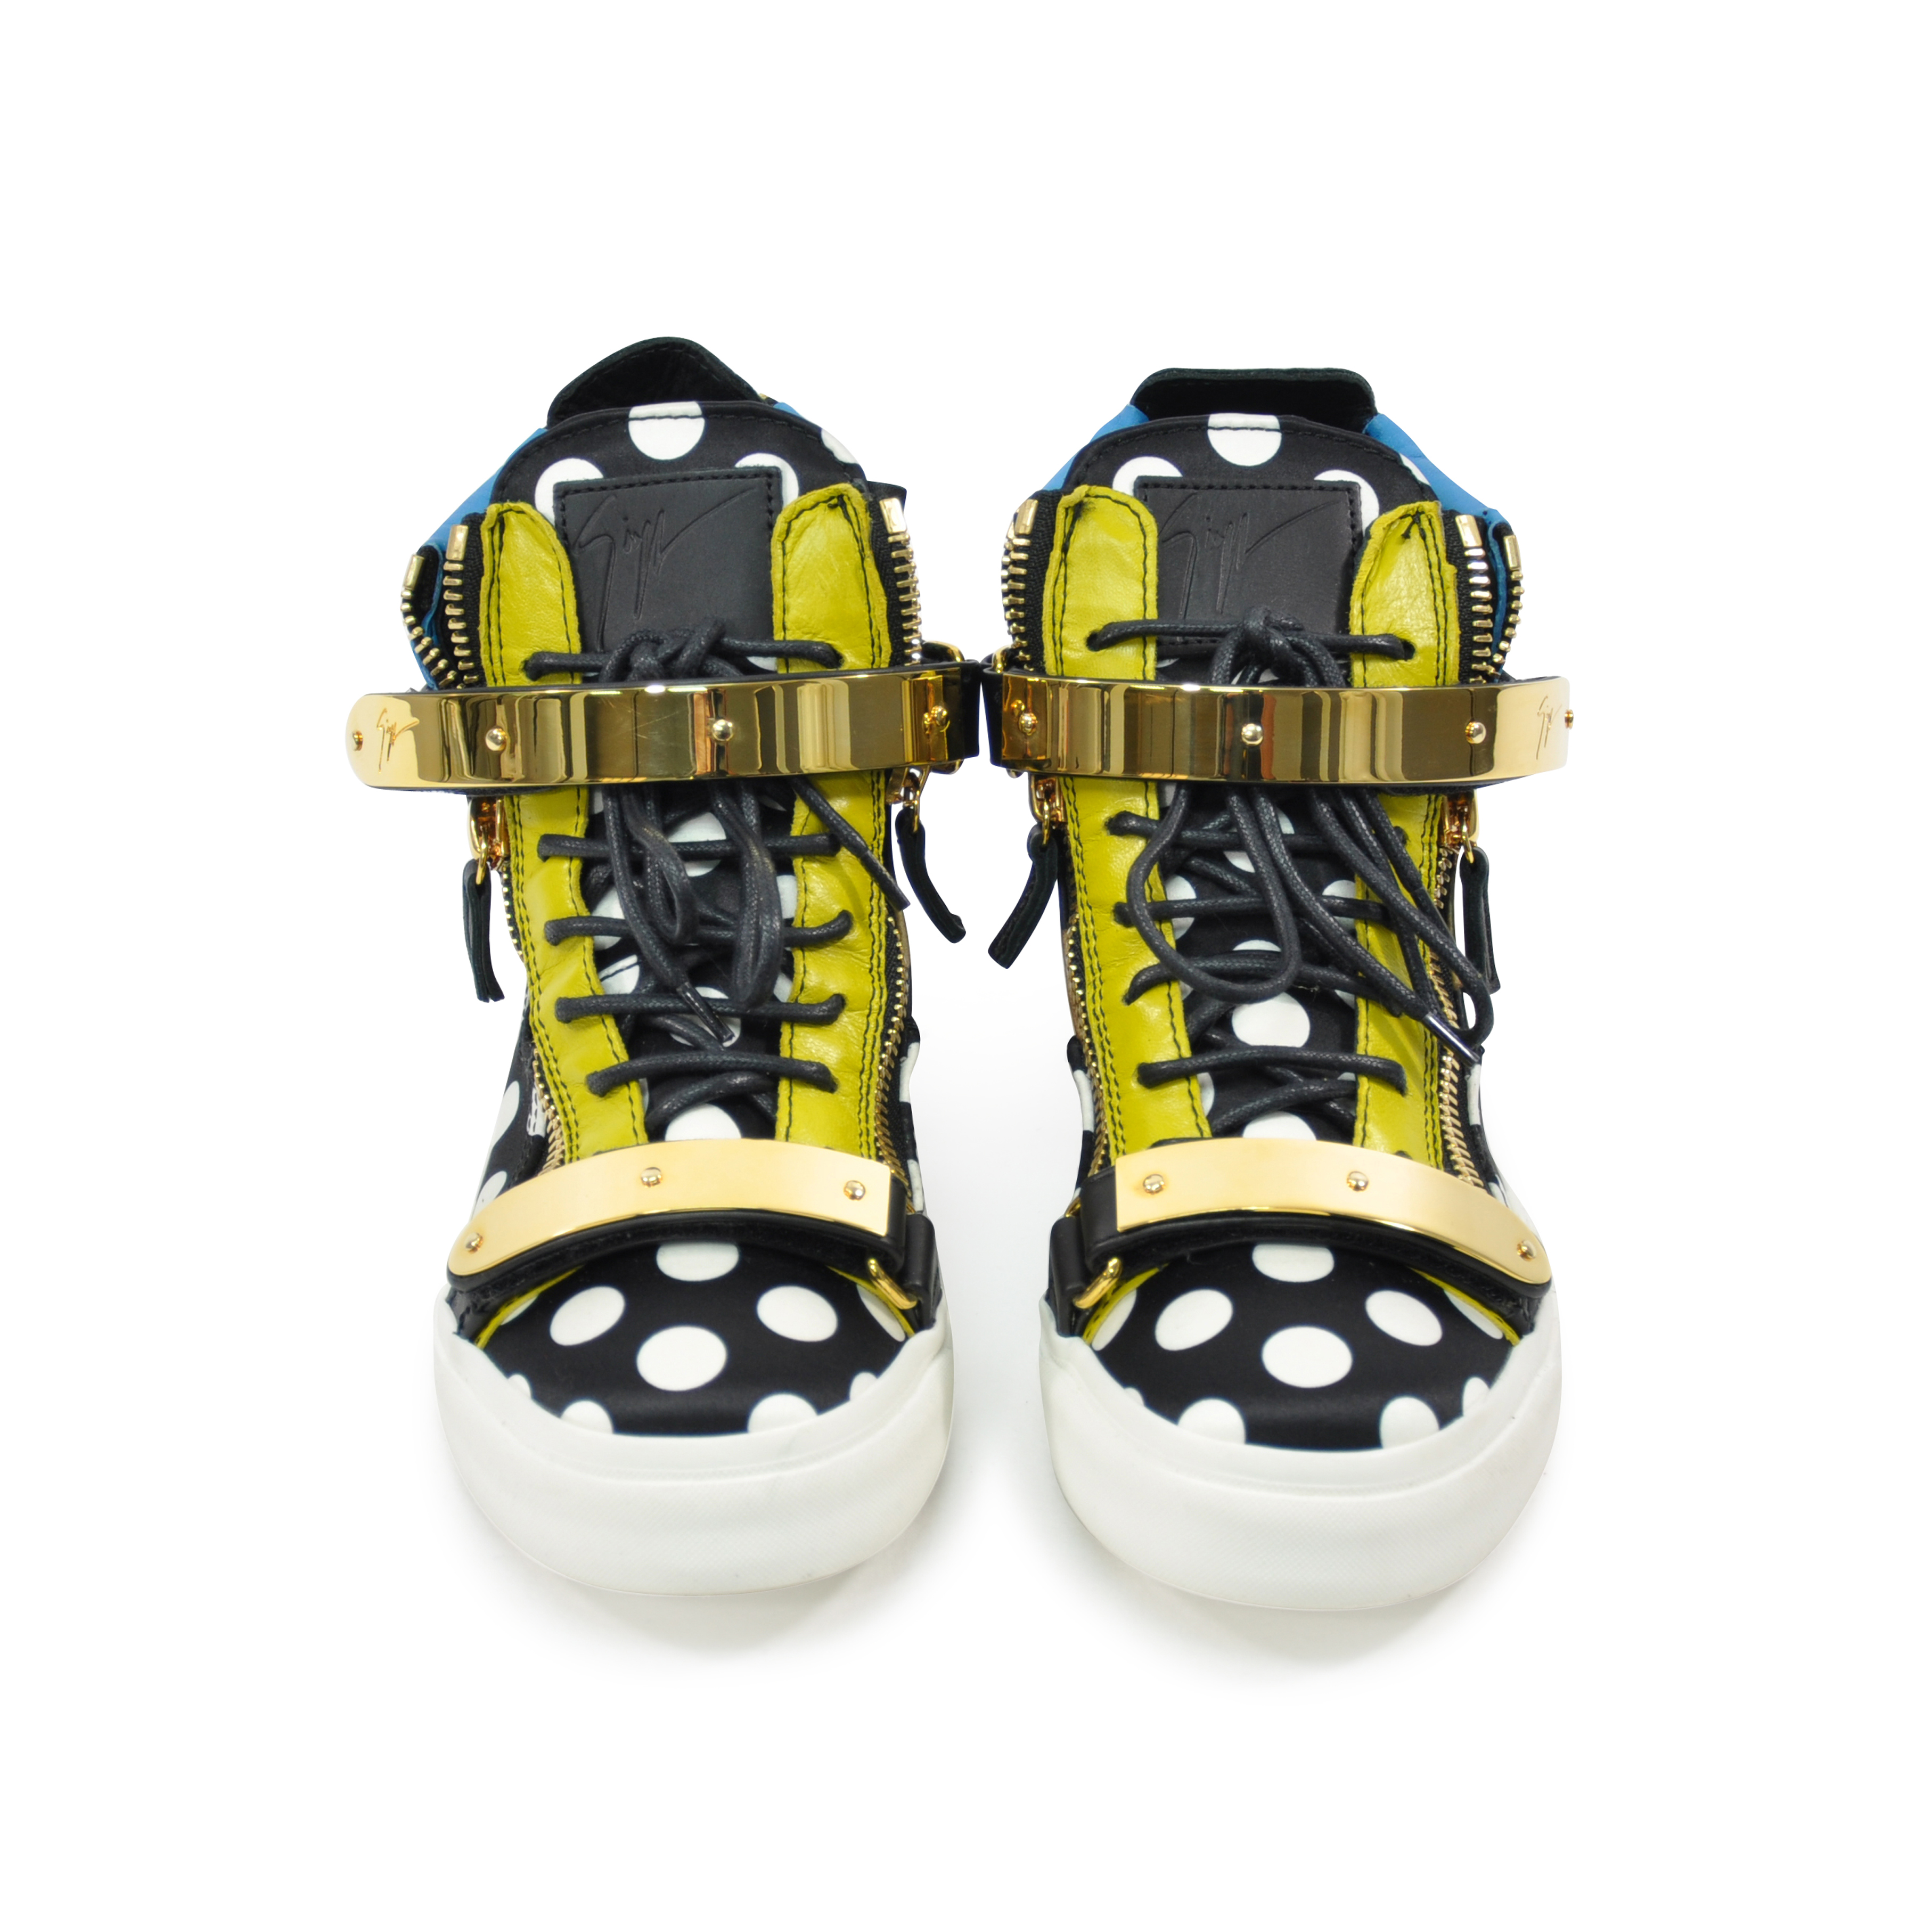 d2447a3f0511e Authentic Second Hand Giuseppe Zanotti London Polka Dot Satin Hi Top  Sneakers (PSS-200-00741) - THE FIFTH COLLECTION